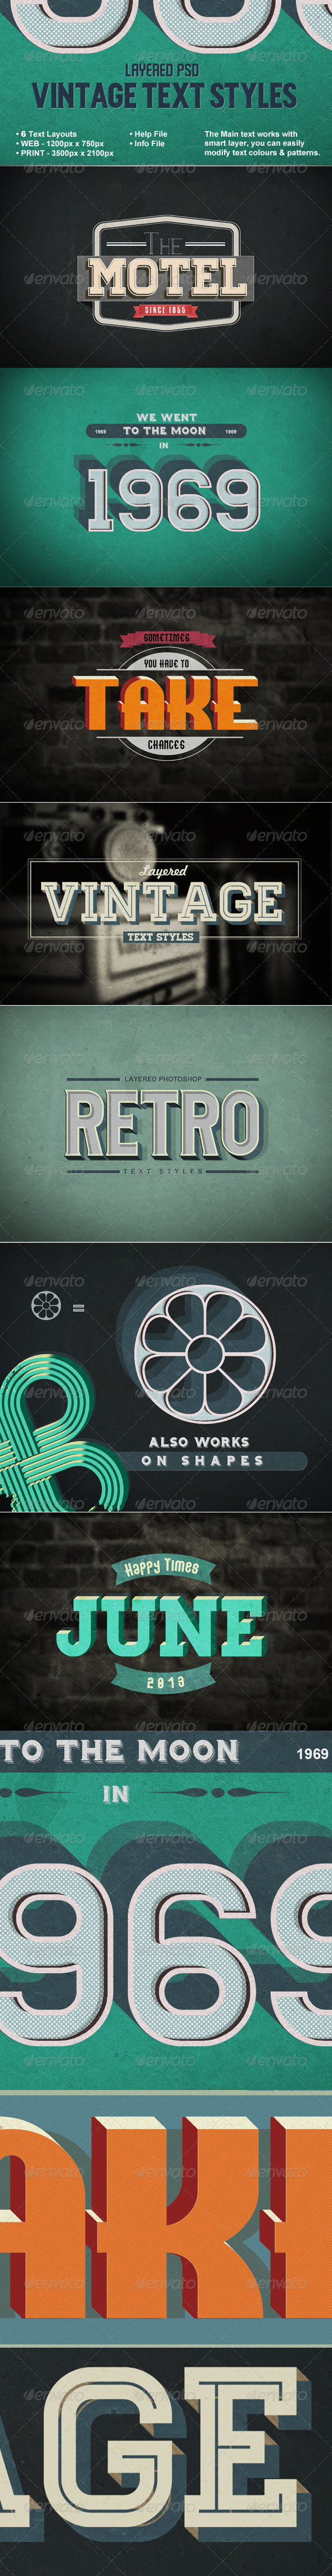 Vintage Text Styles - Photoshop Add-ons